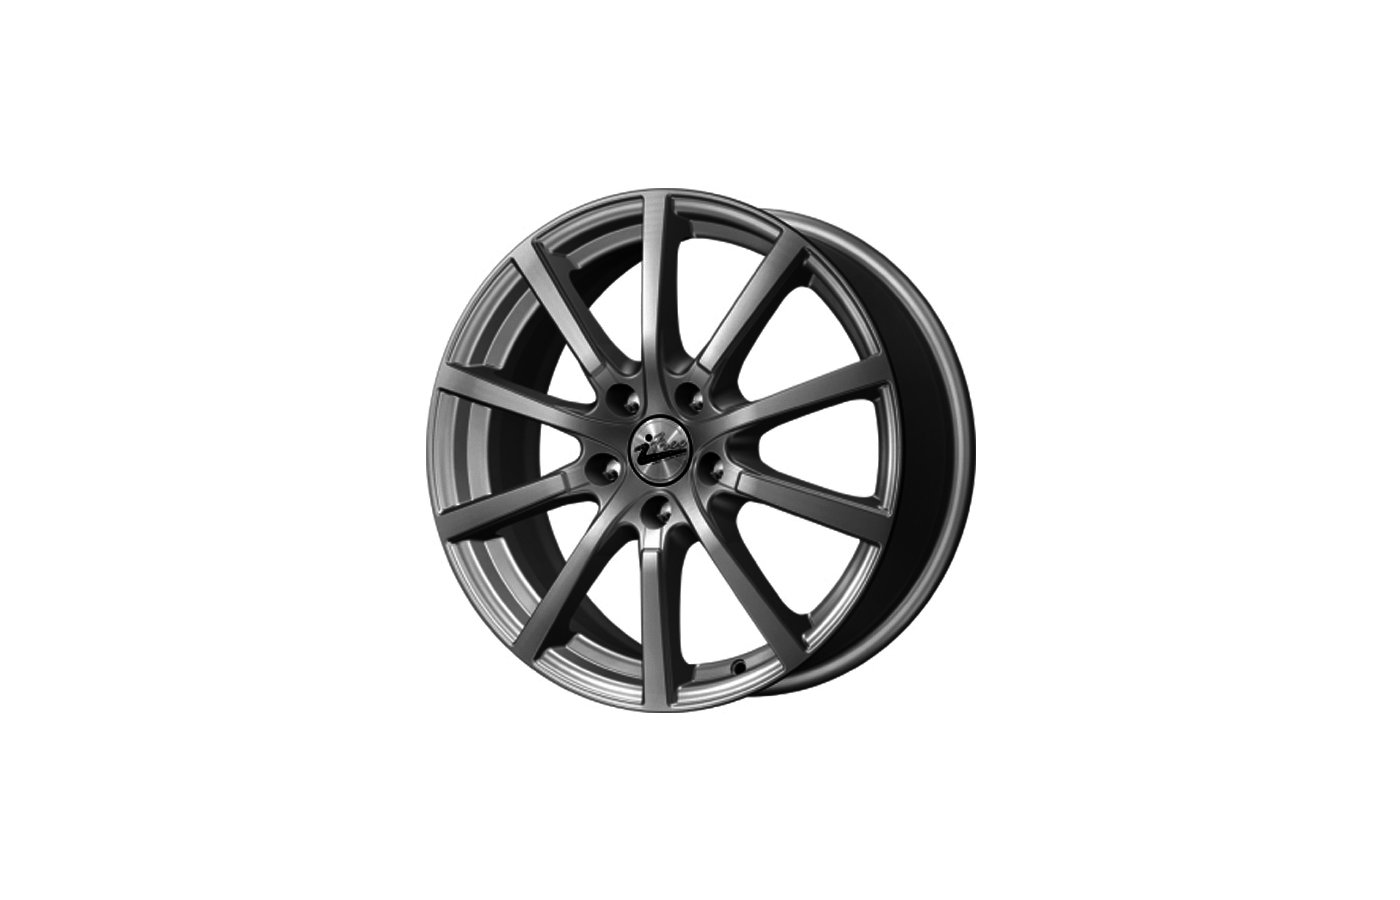 Диск iFree Big Byz 7x17/5x108 D63.3 ET50 Хай вэй